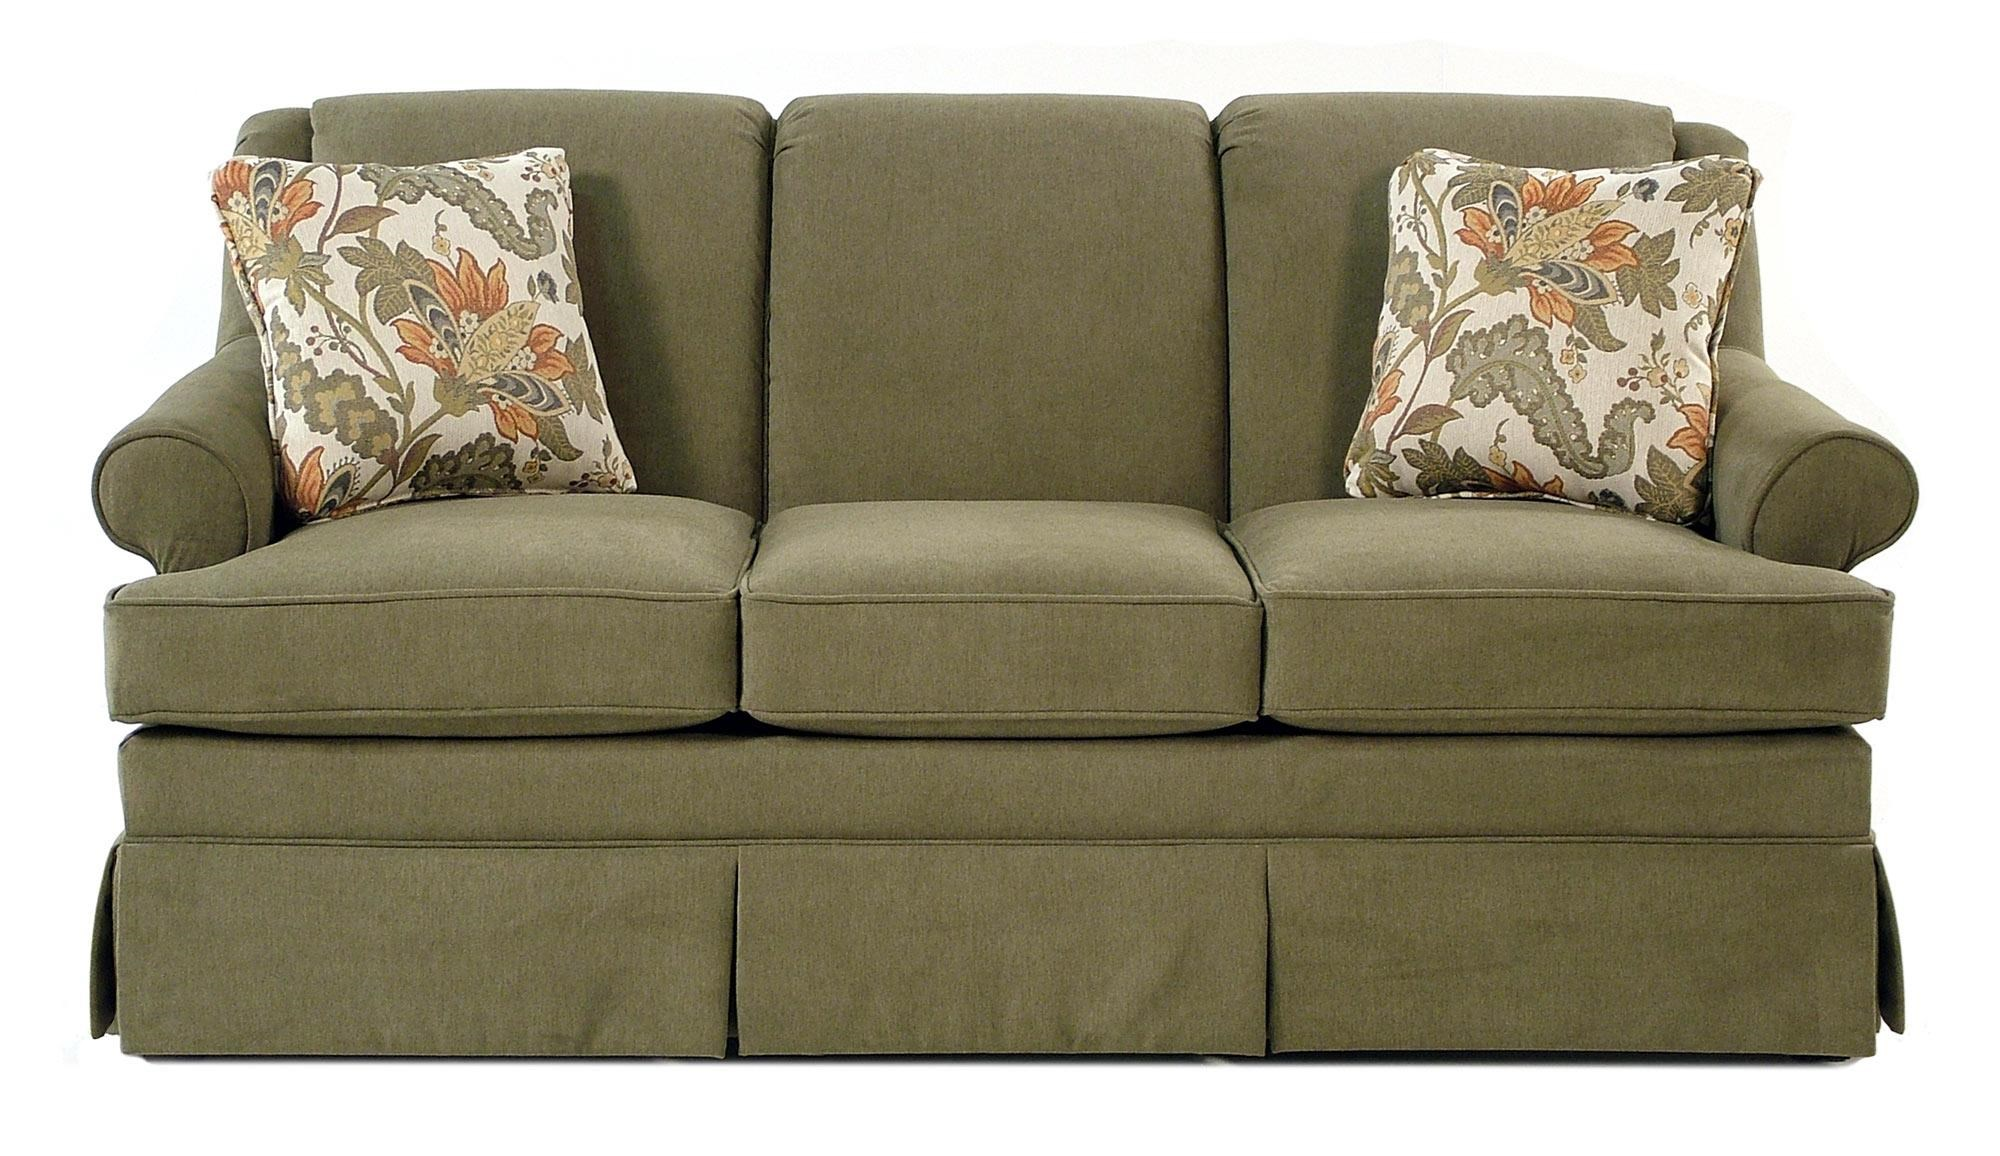 Cozy Life Audrey Traditional Skirted Sofa - Item Number: 920550-LEWIS16